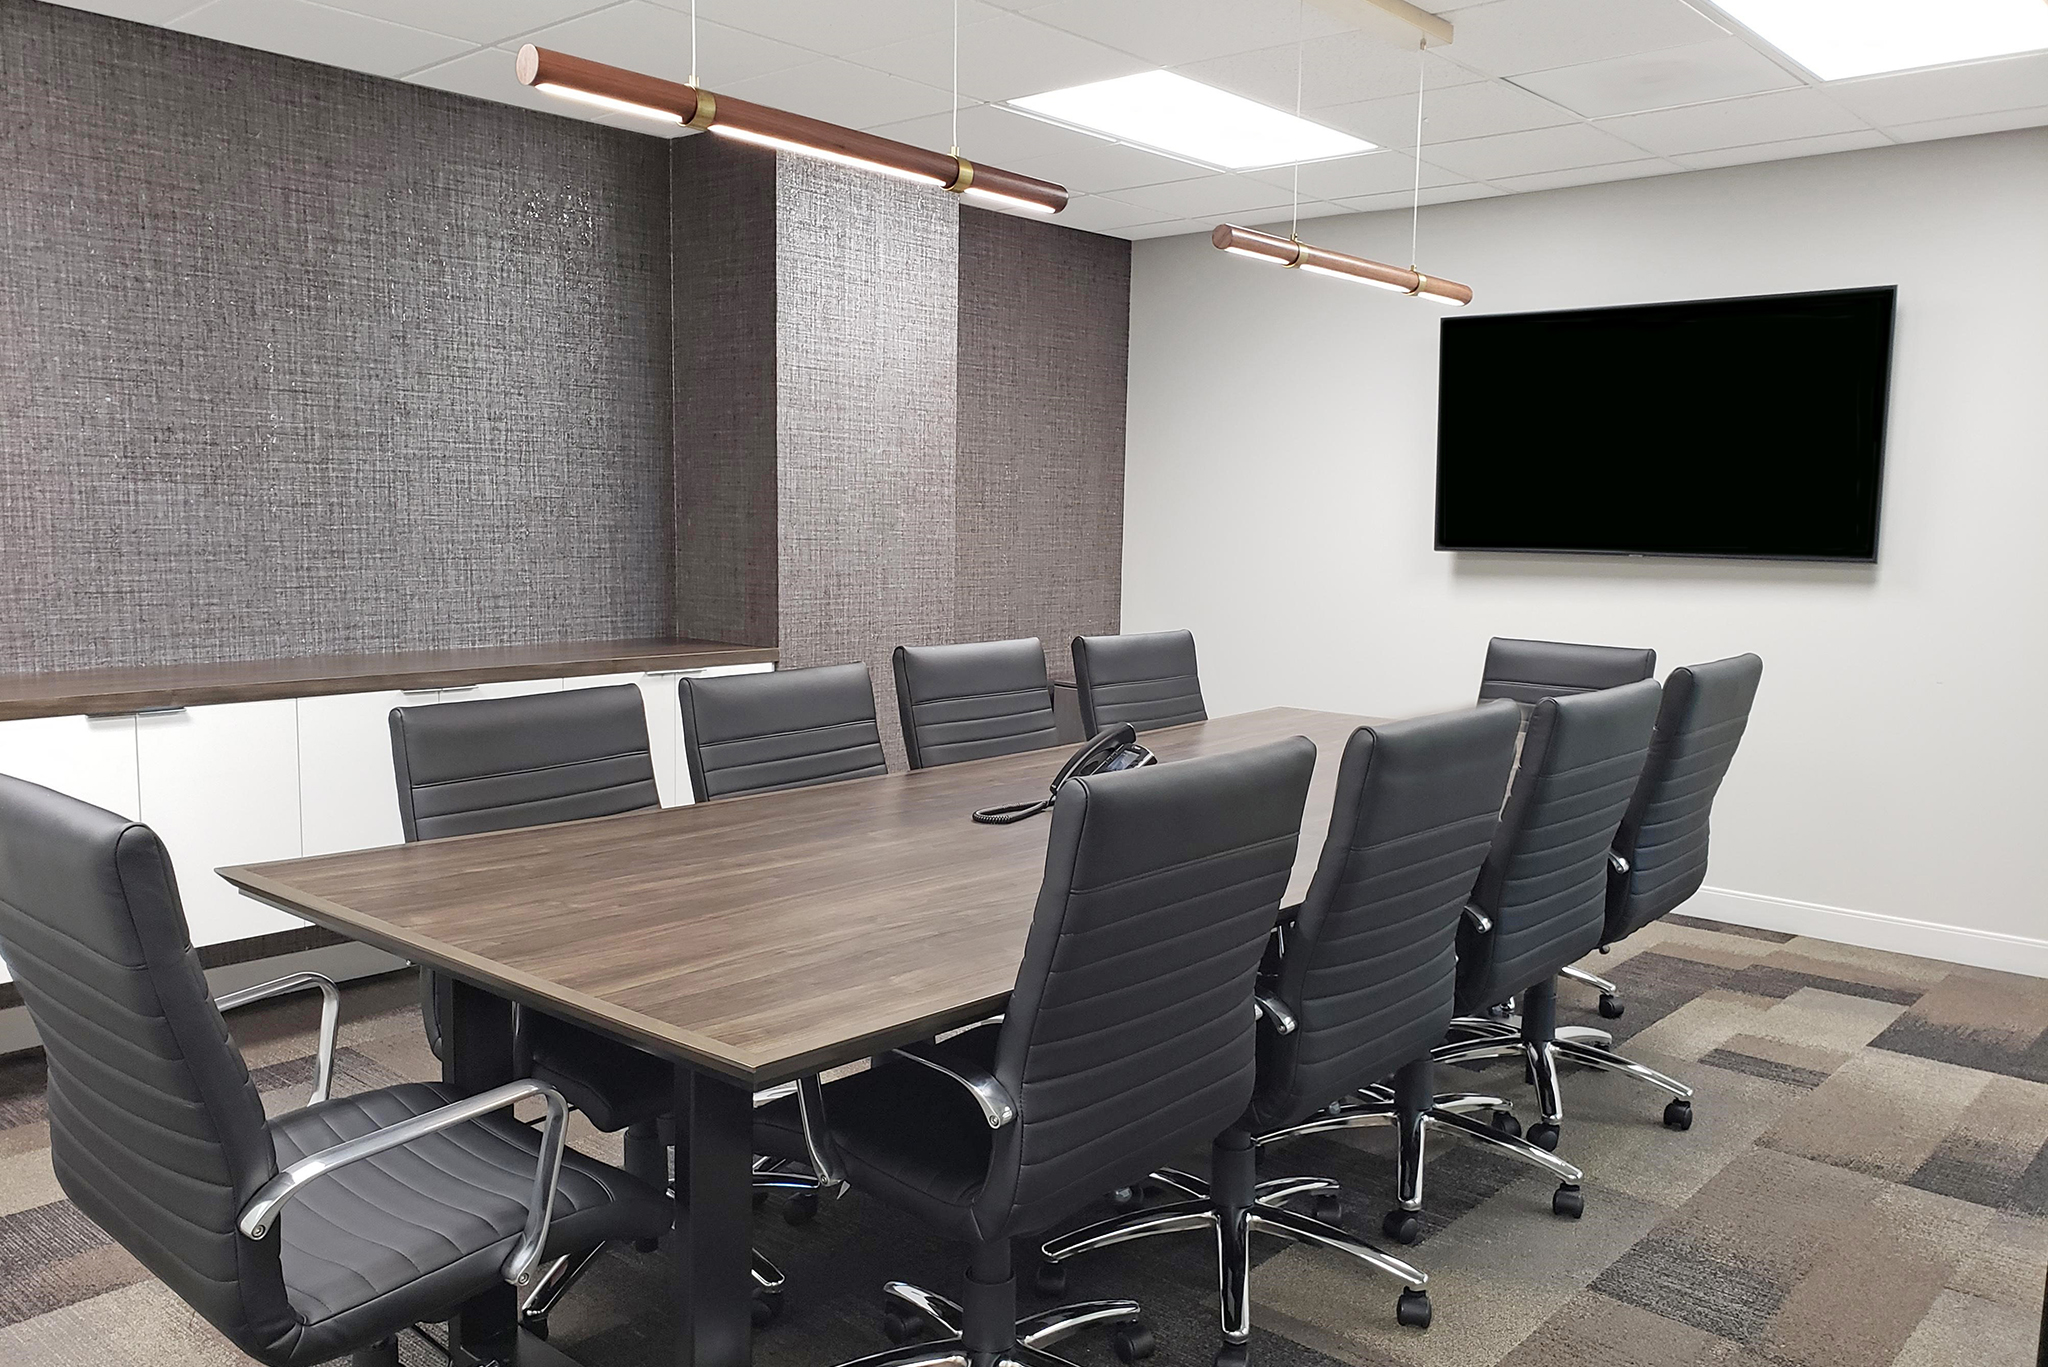 Office Space in Mission Valley 8880 Rio San Diego Drive 8th Floor